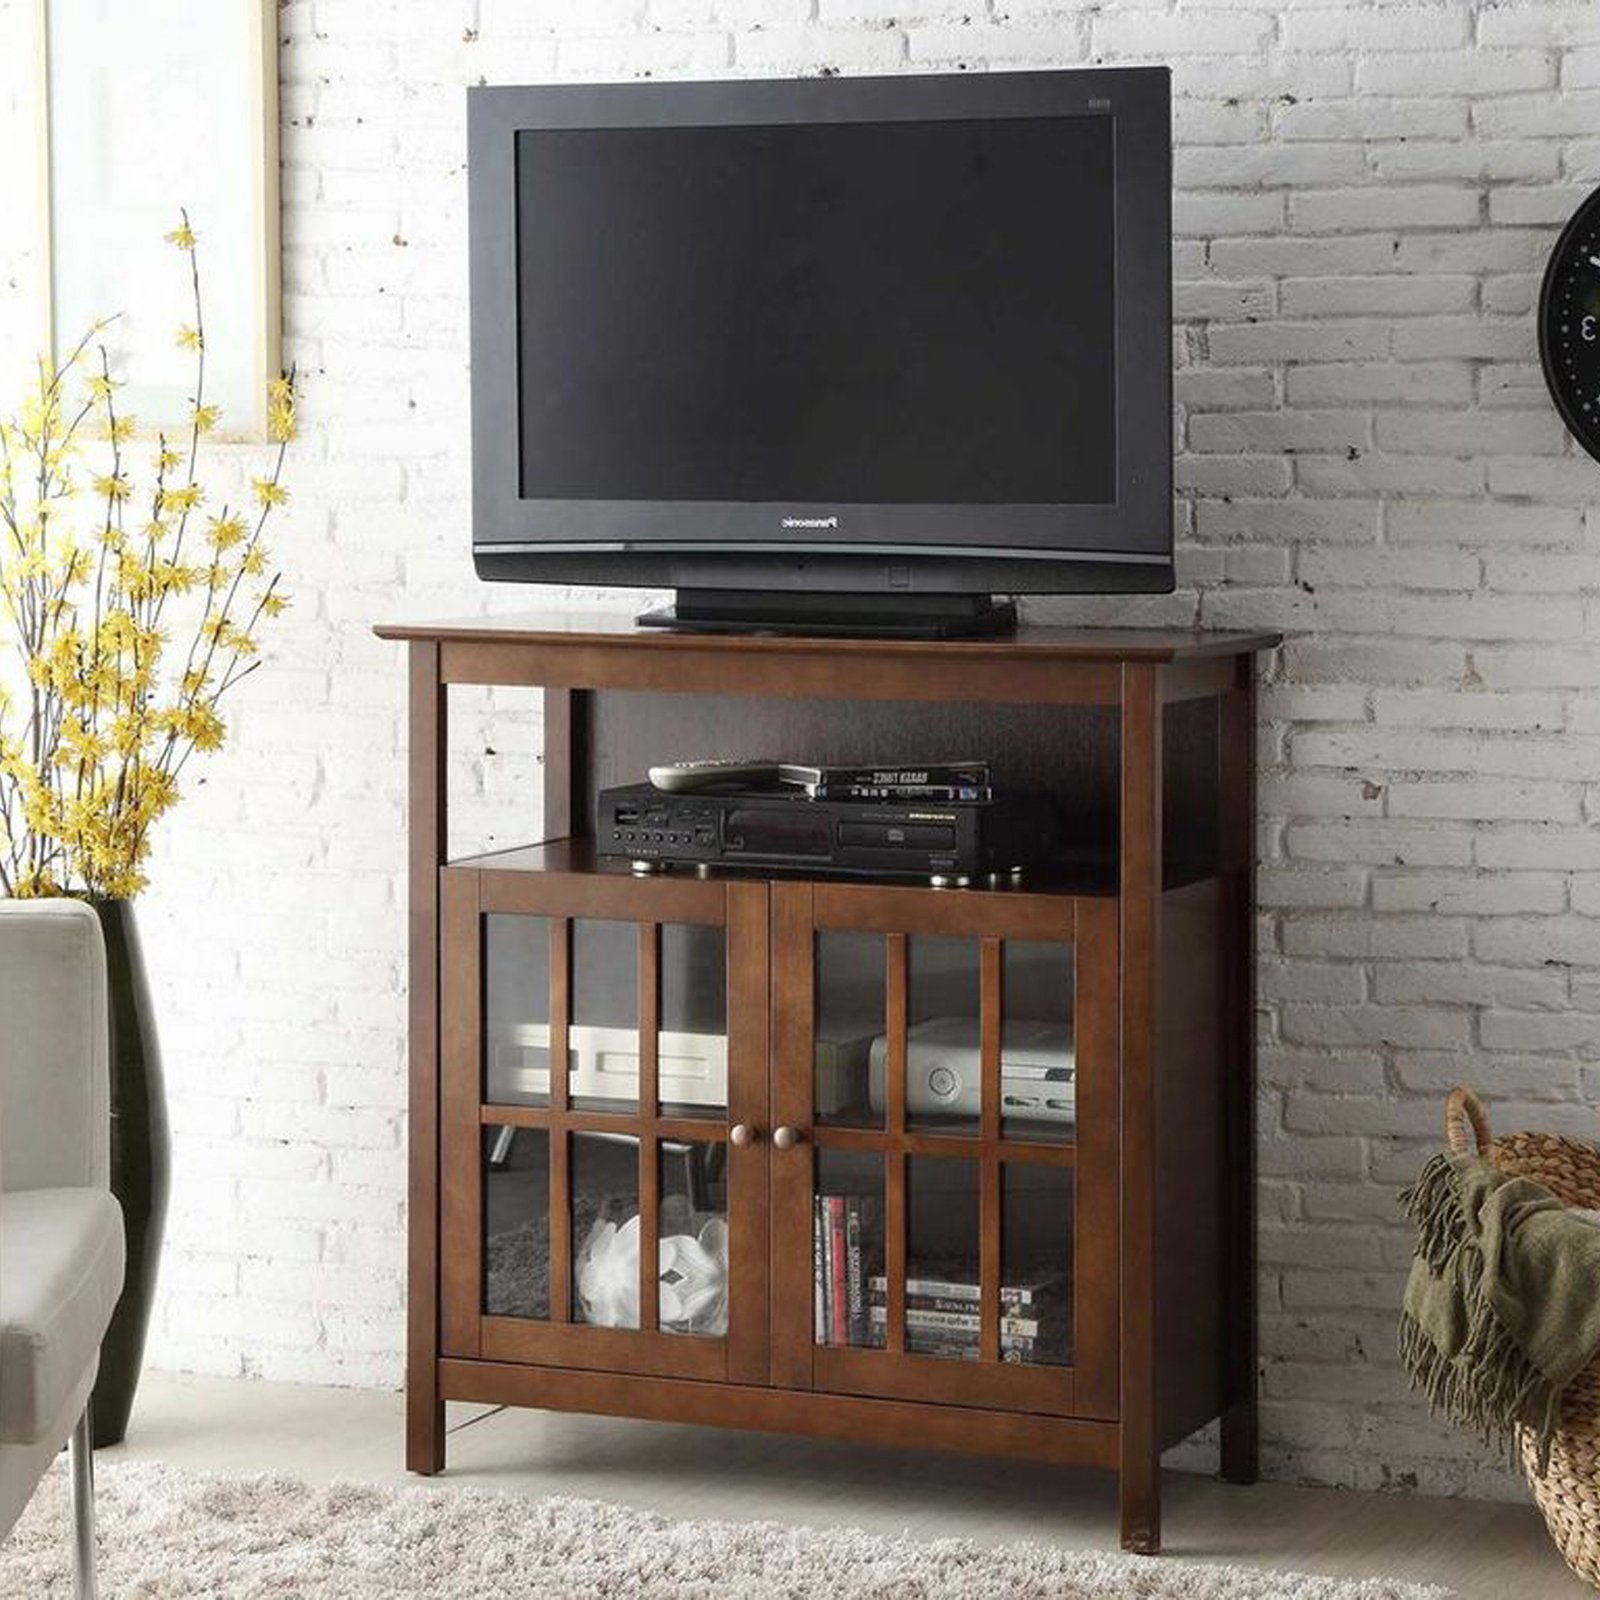 Tv Stands & Entertainment Centers | Hayneedle Intended For Murphy 72 Inch Tv Stands (View 11 of 20)